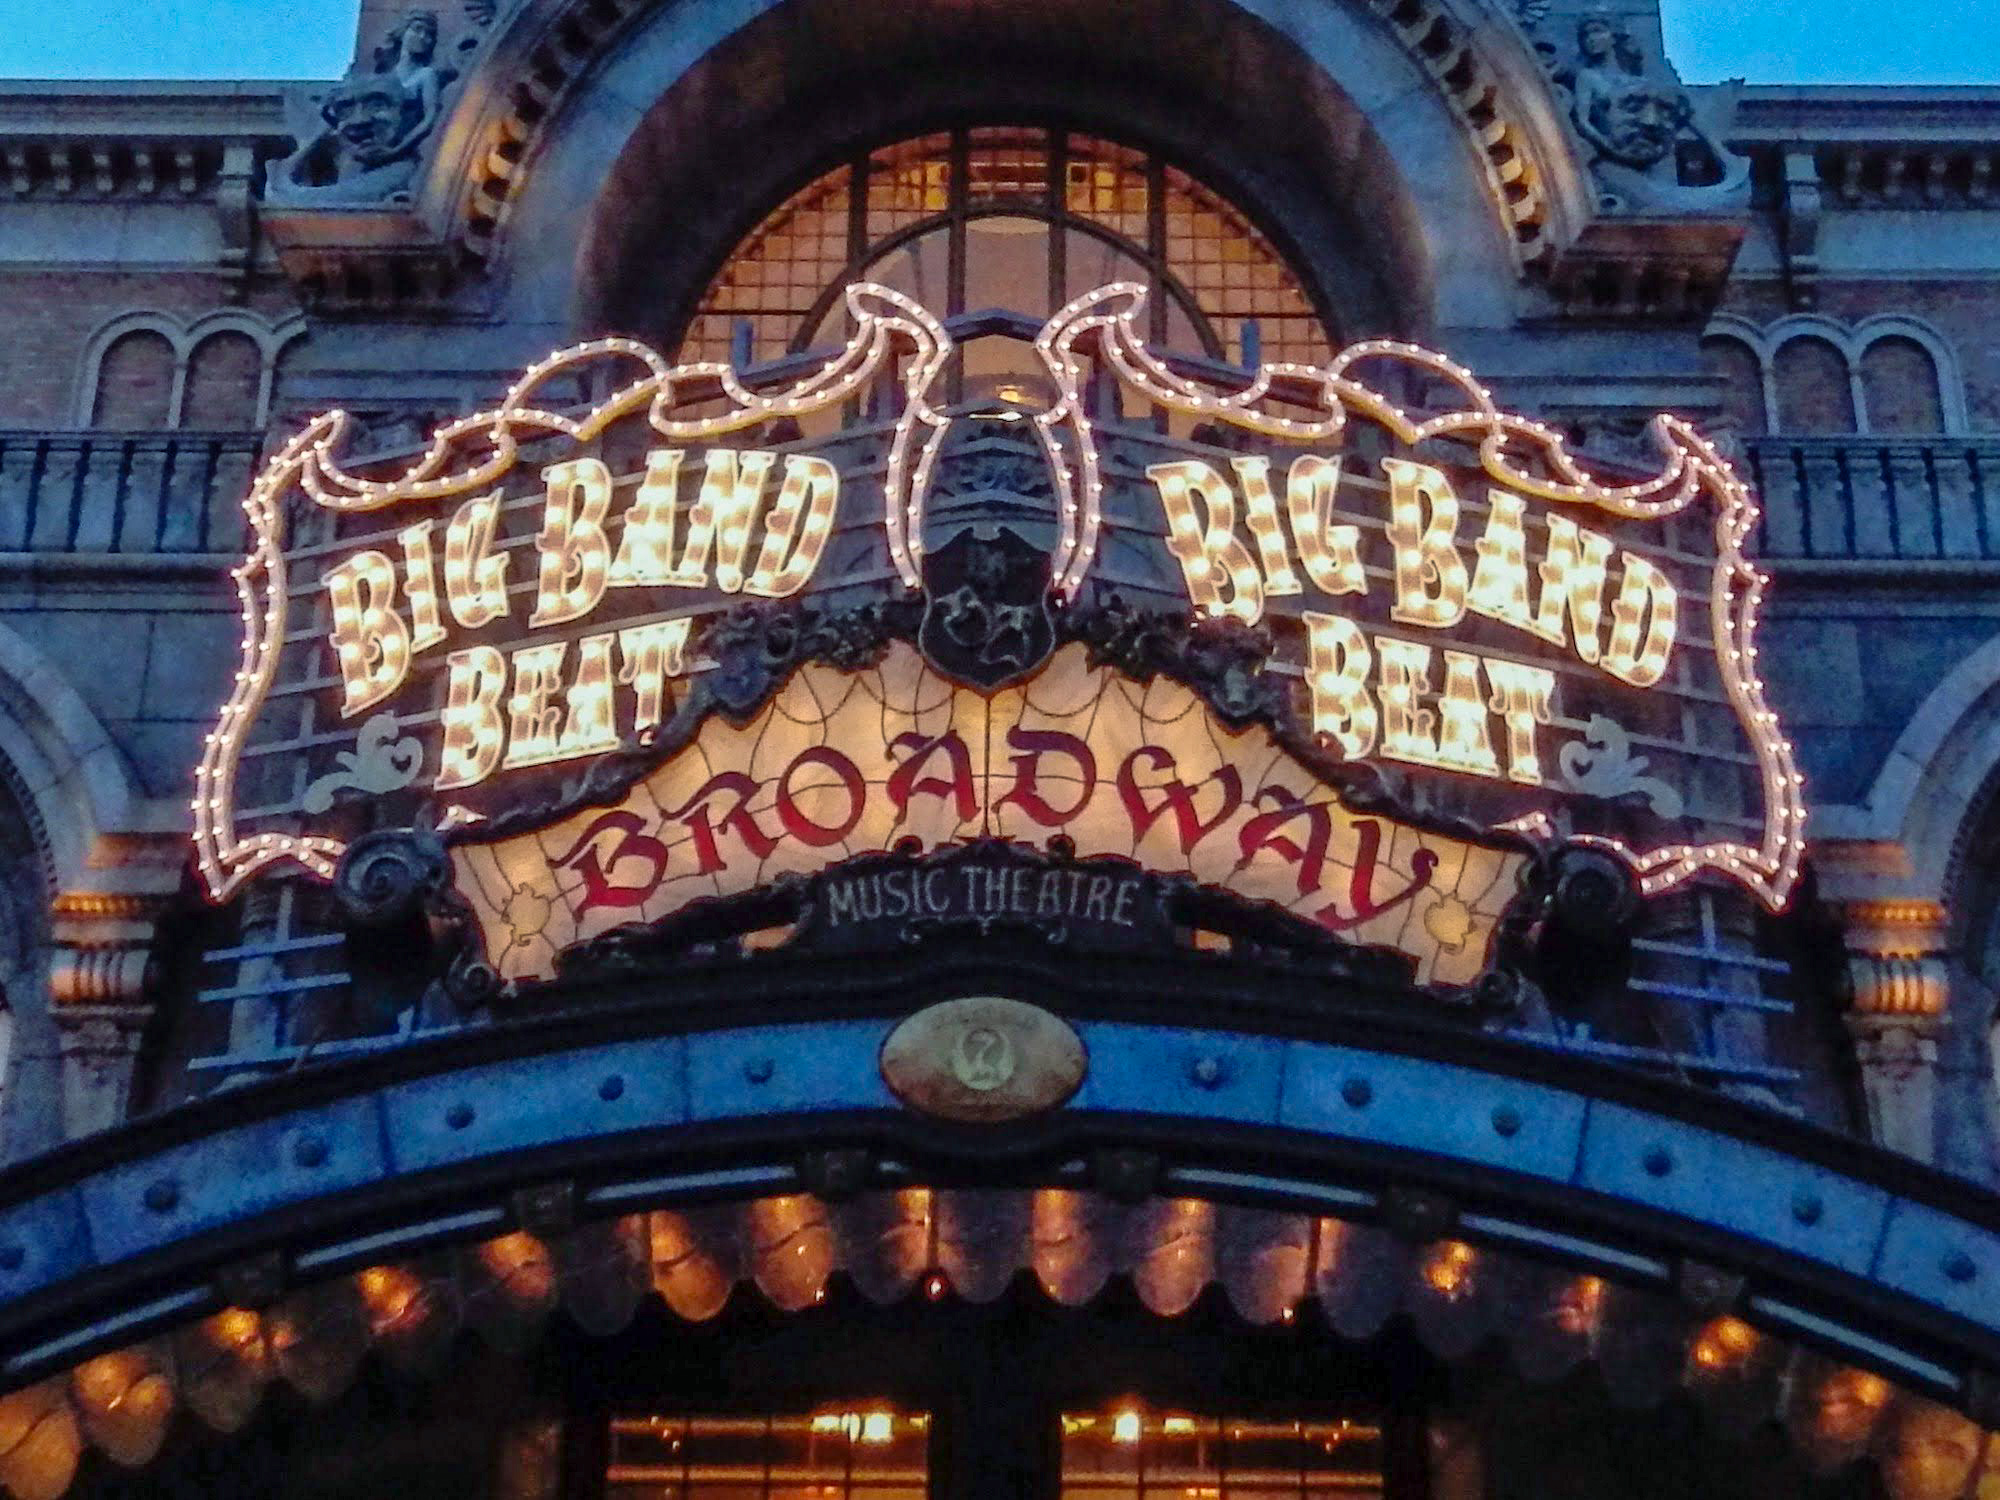 The marquee for Big Band Beat.